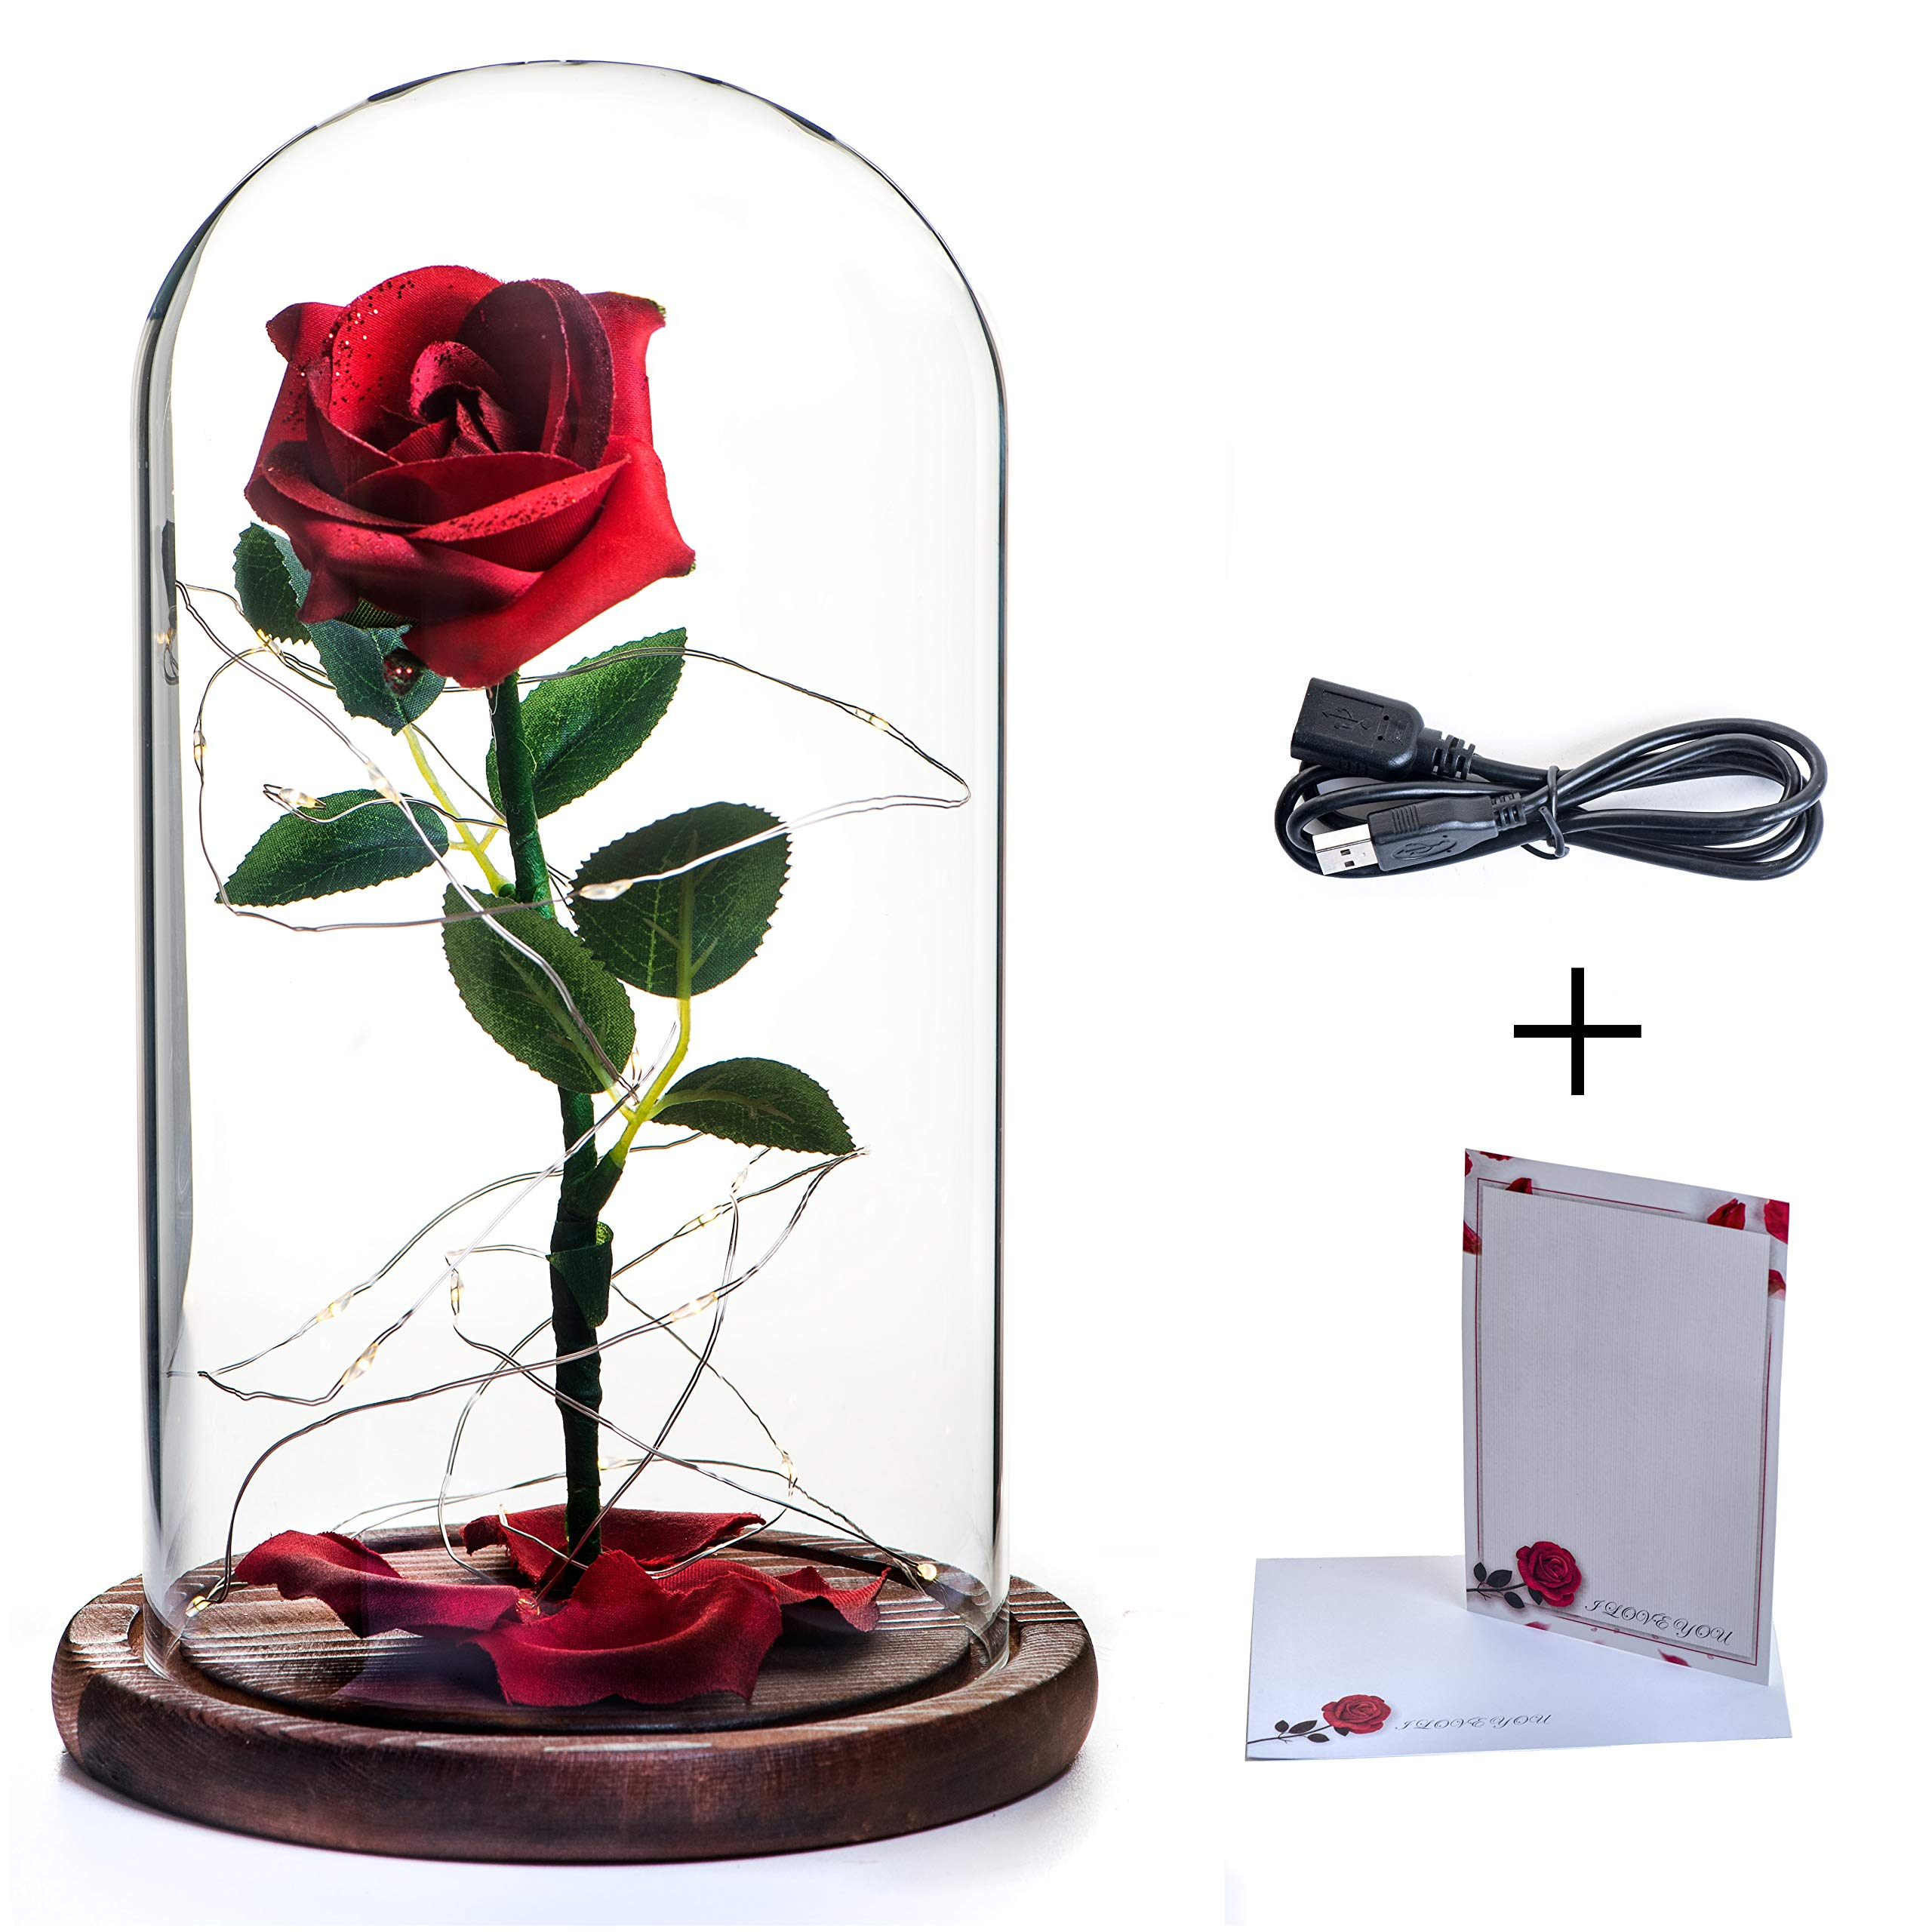 Dr. Premium Beauty and The Beast Rose Kit: Red Silk Rose and LED Lights in Glass Dome on Wood Base for Home Décor, Holiday, Party, Wedding, Anniversary